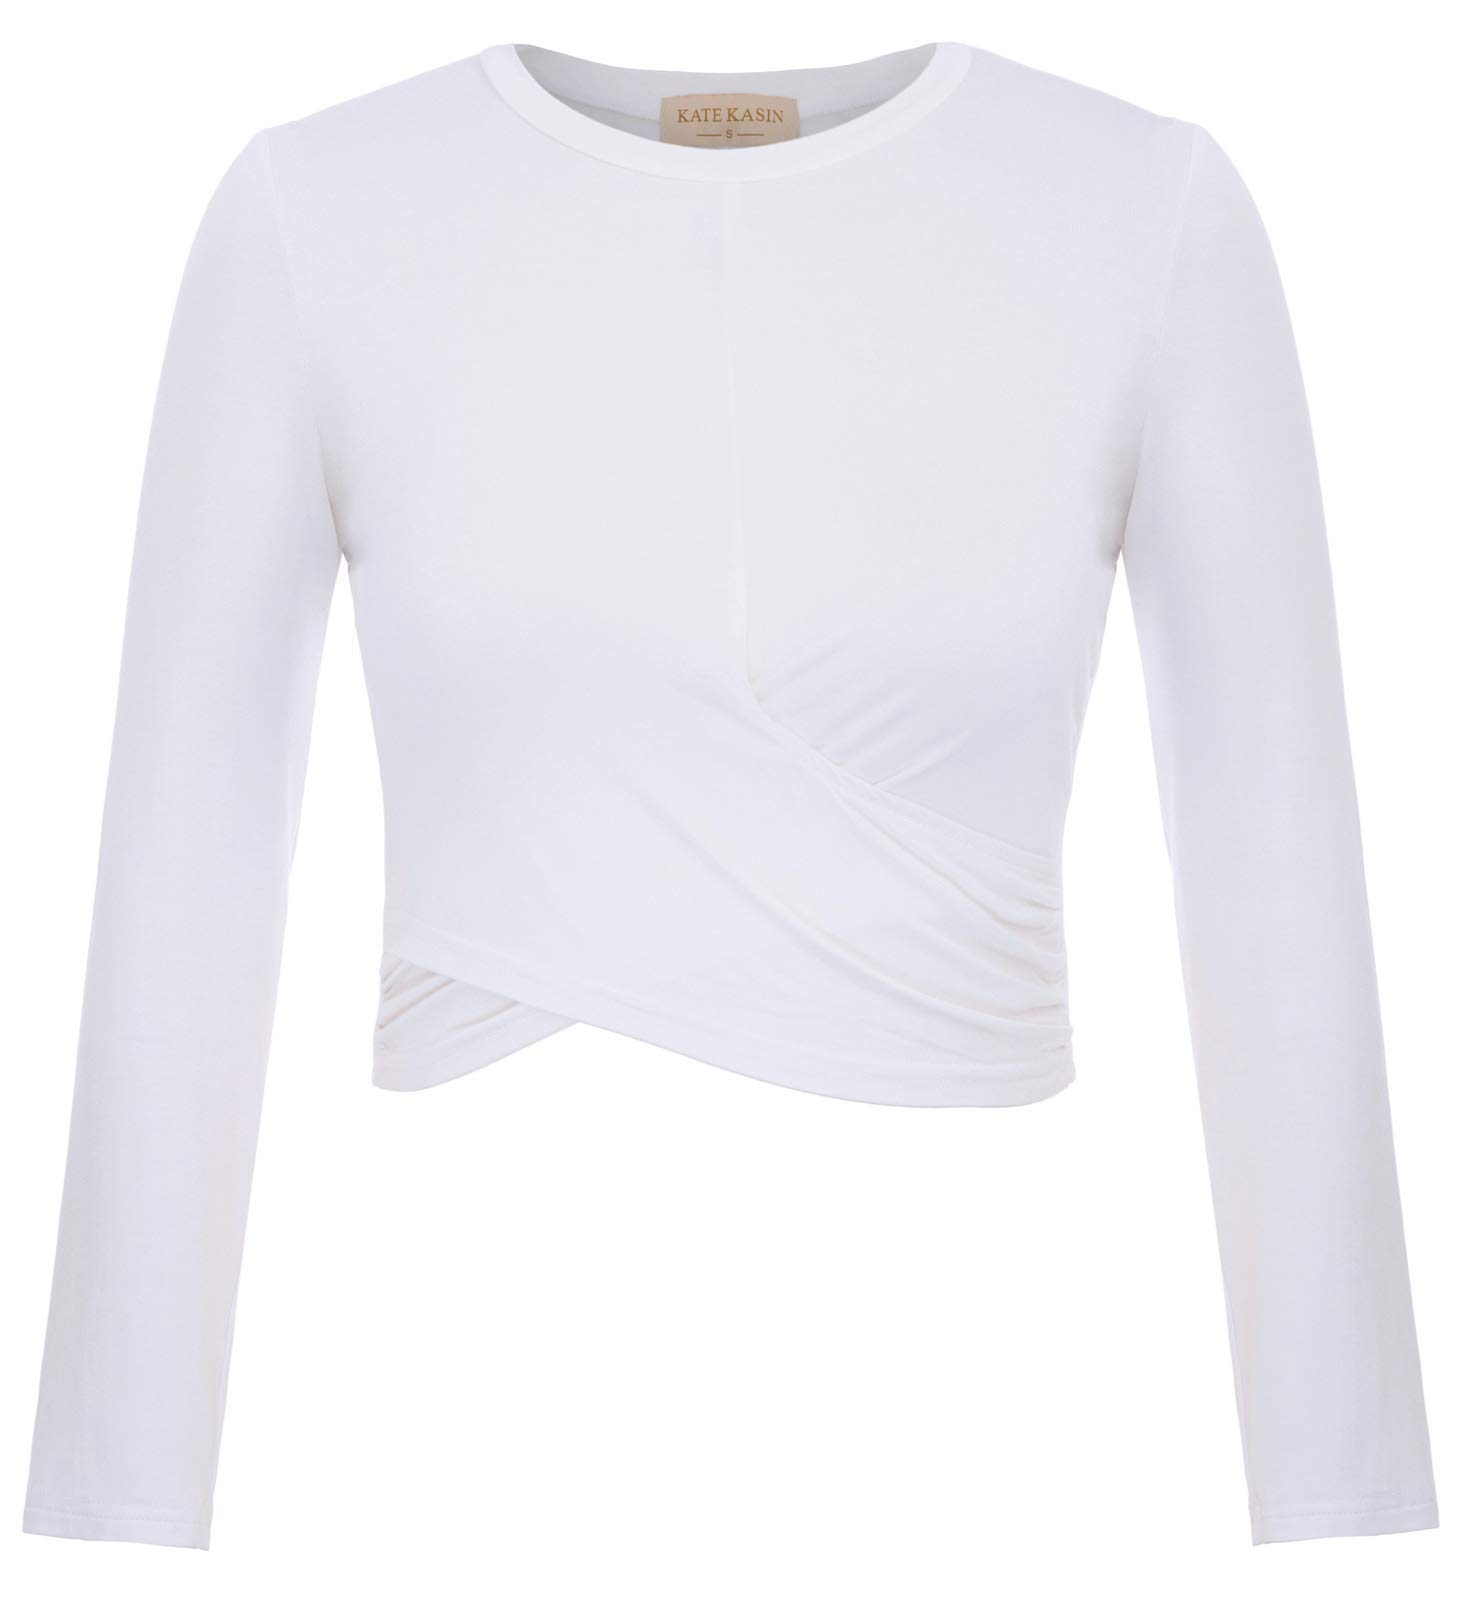 Womens Long Sleeve Basic Crop Top Round Neck with Stretch White,M